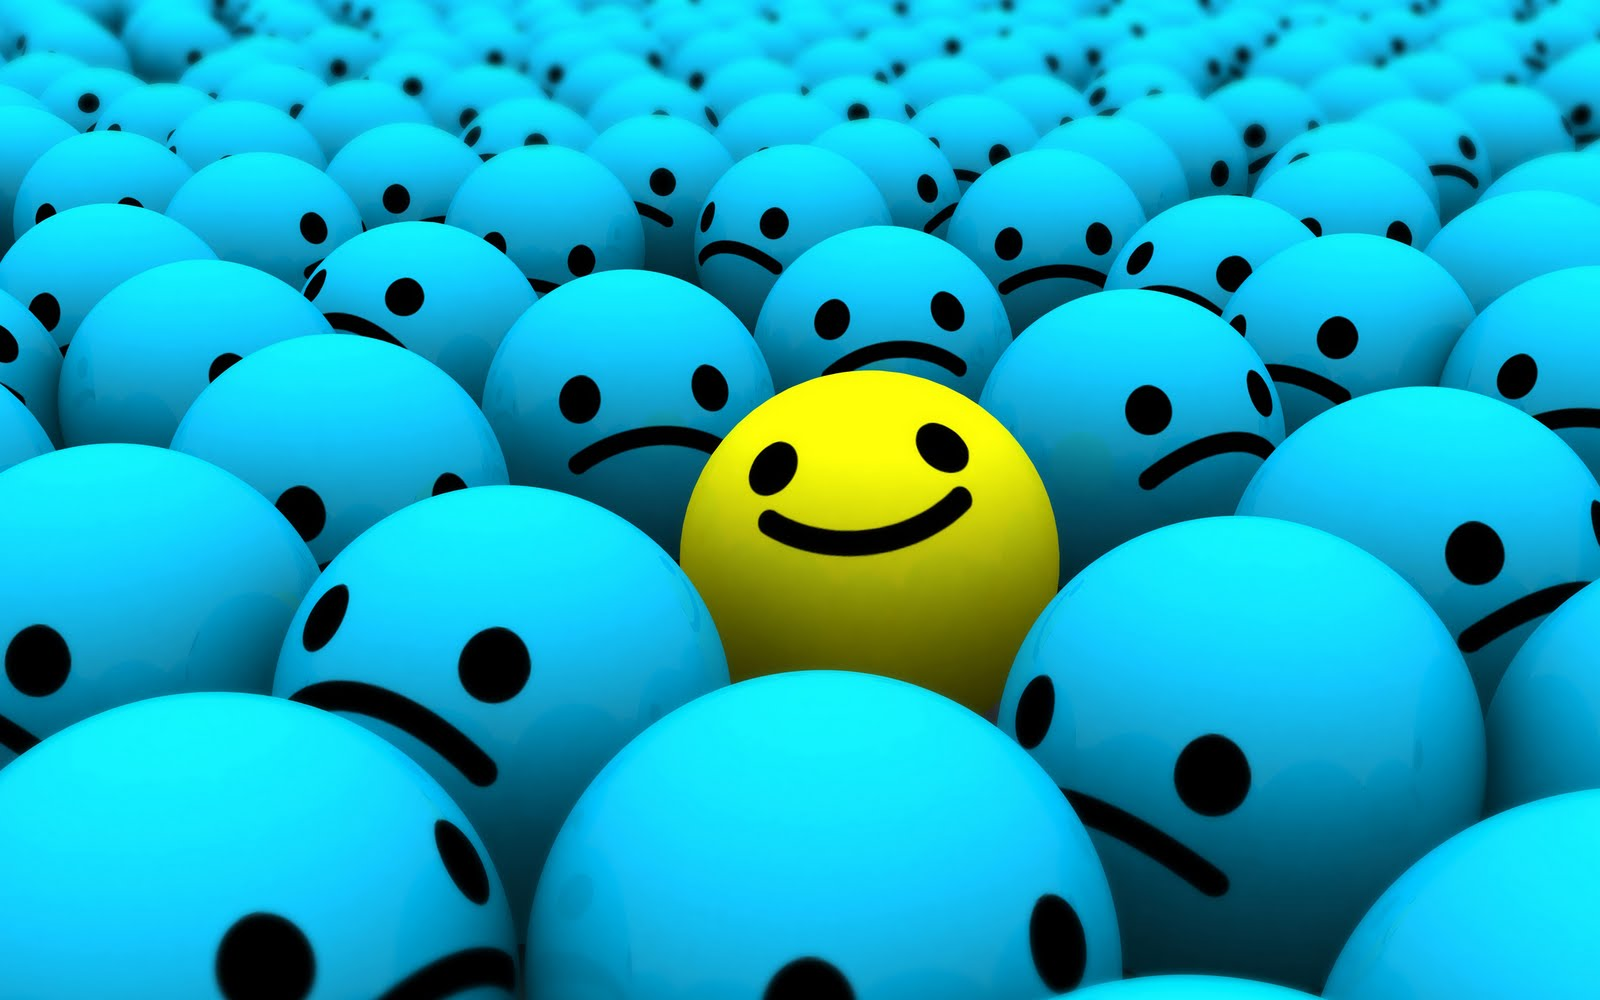 Smile Icon Backgrounds Emotion Wallpapers Download Wallpapers 1600x1000